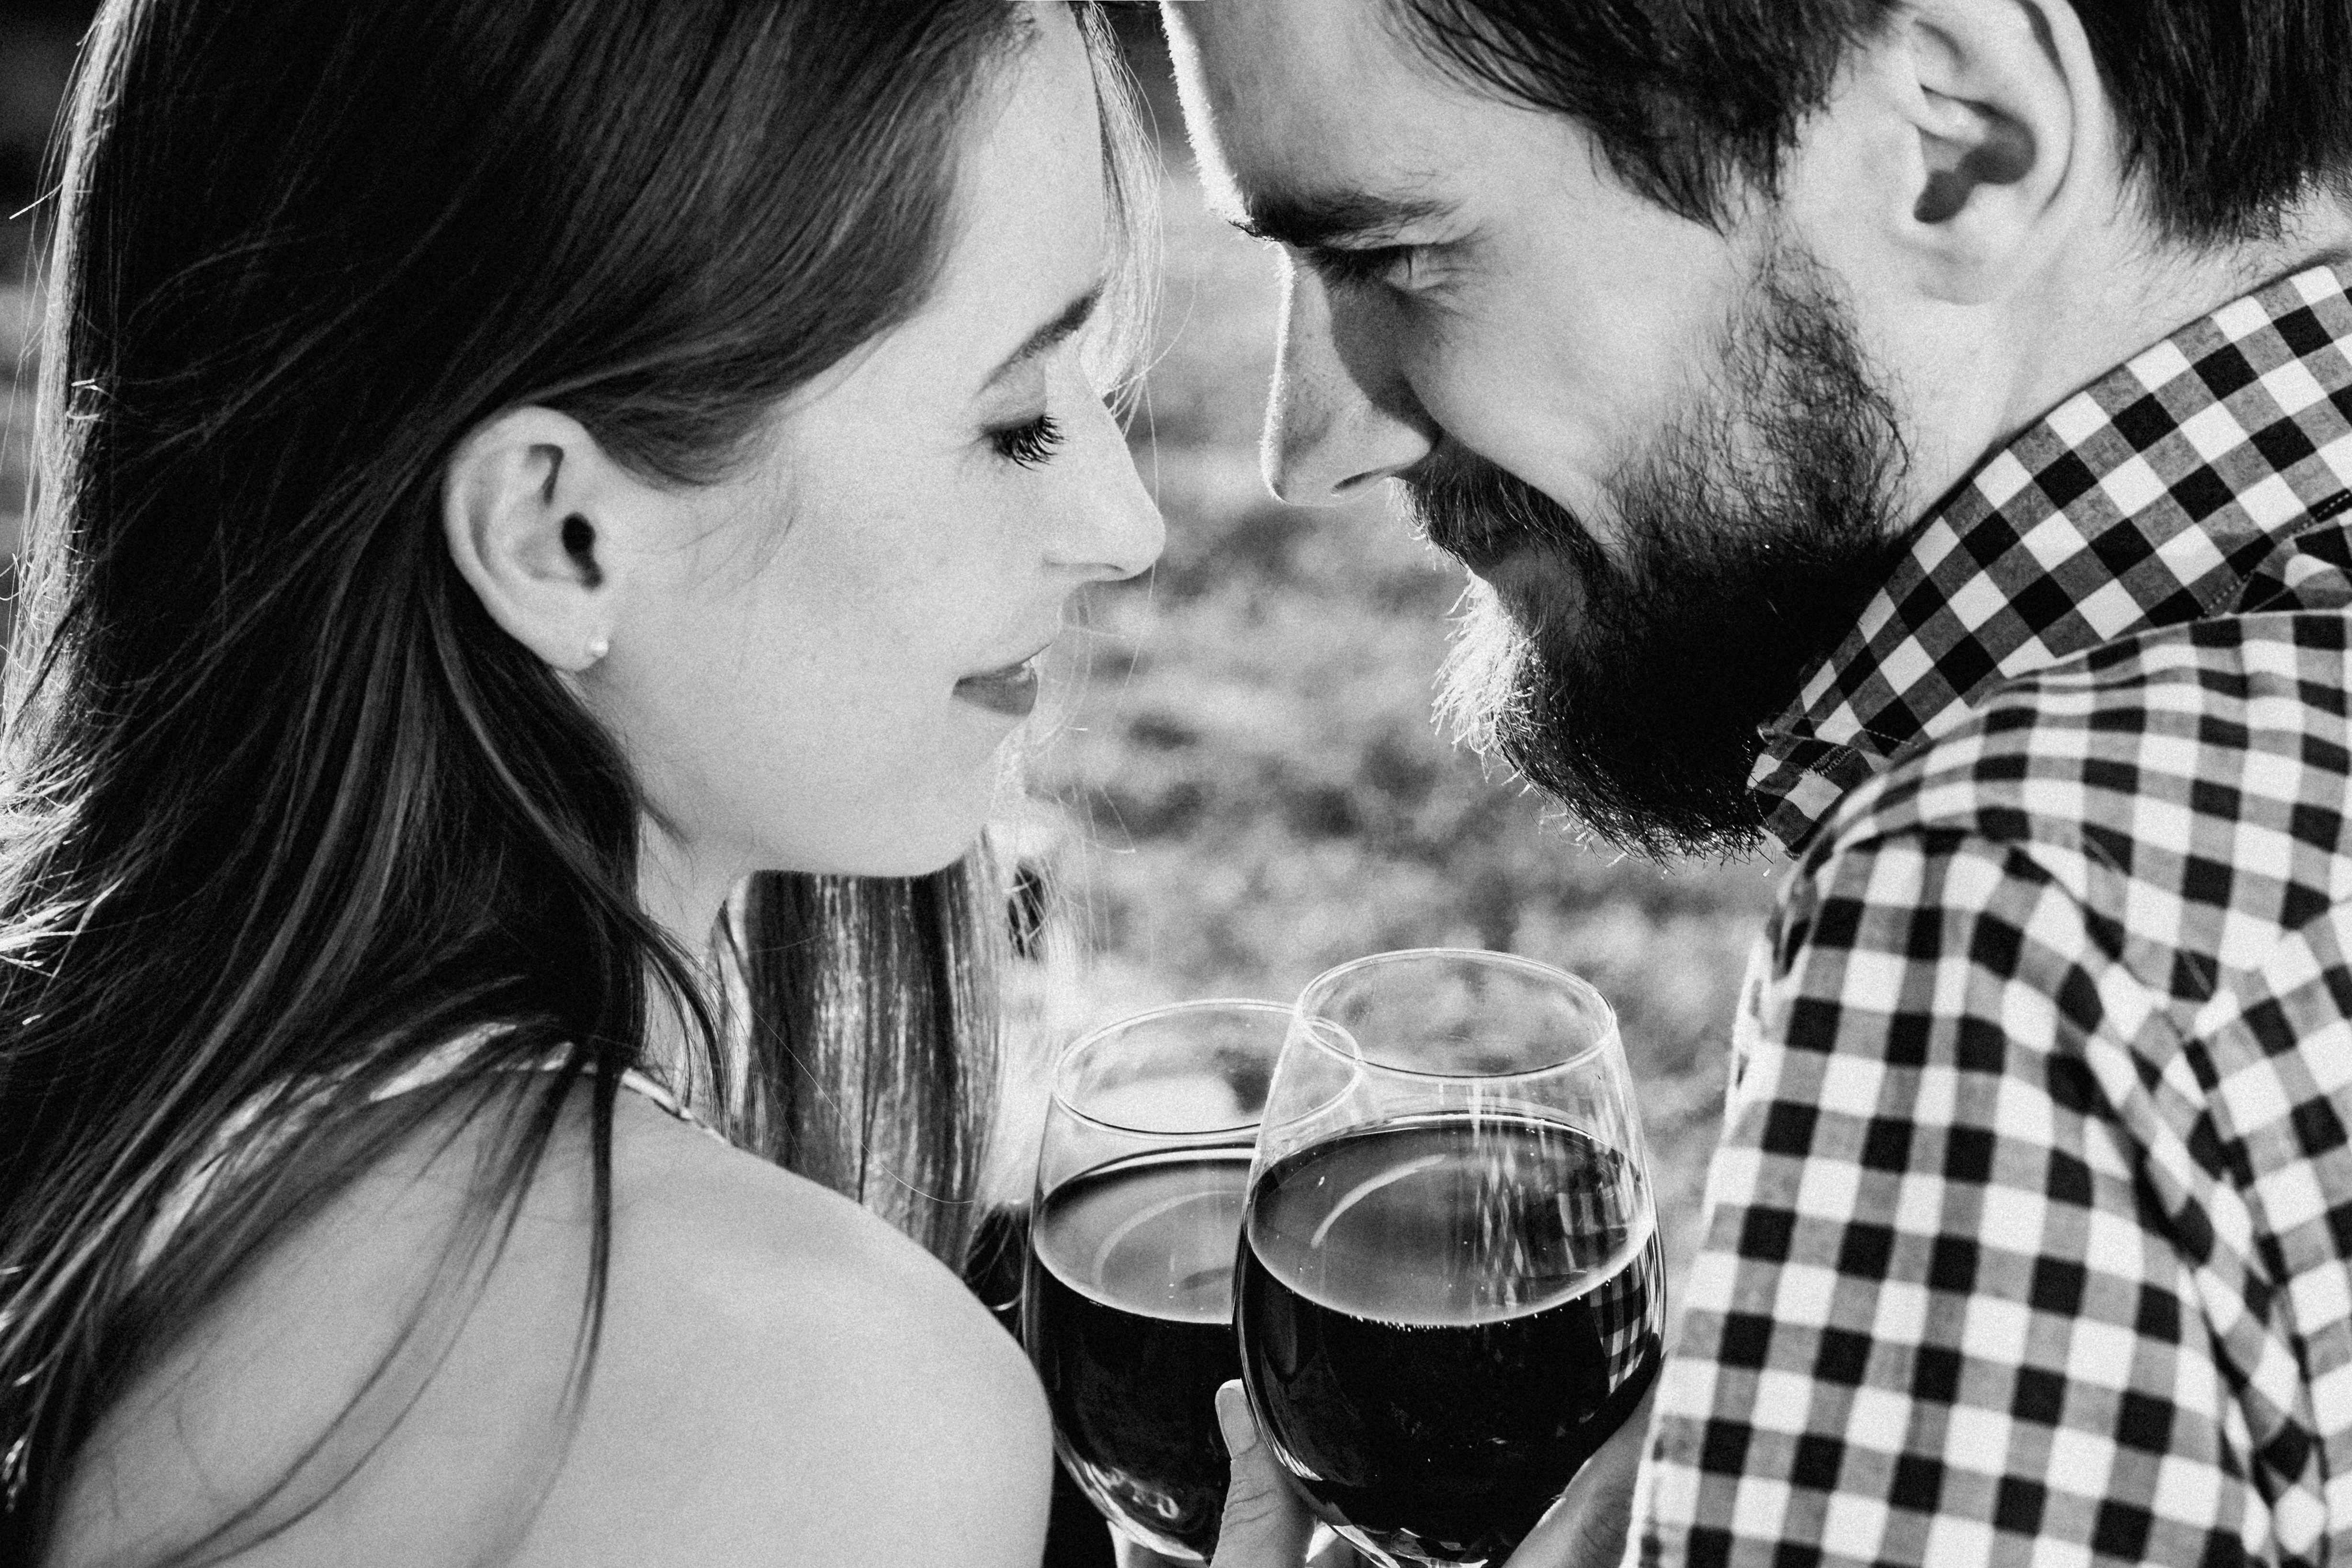 A couple drinking wine, Affection, Sunlight, People, Picnic, HQ Photo